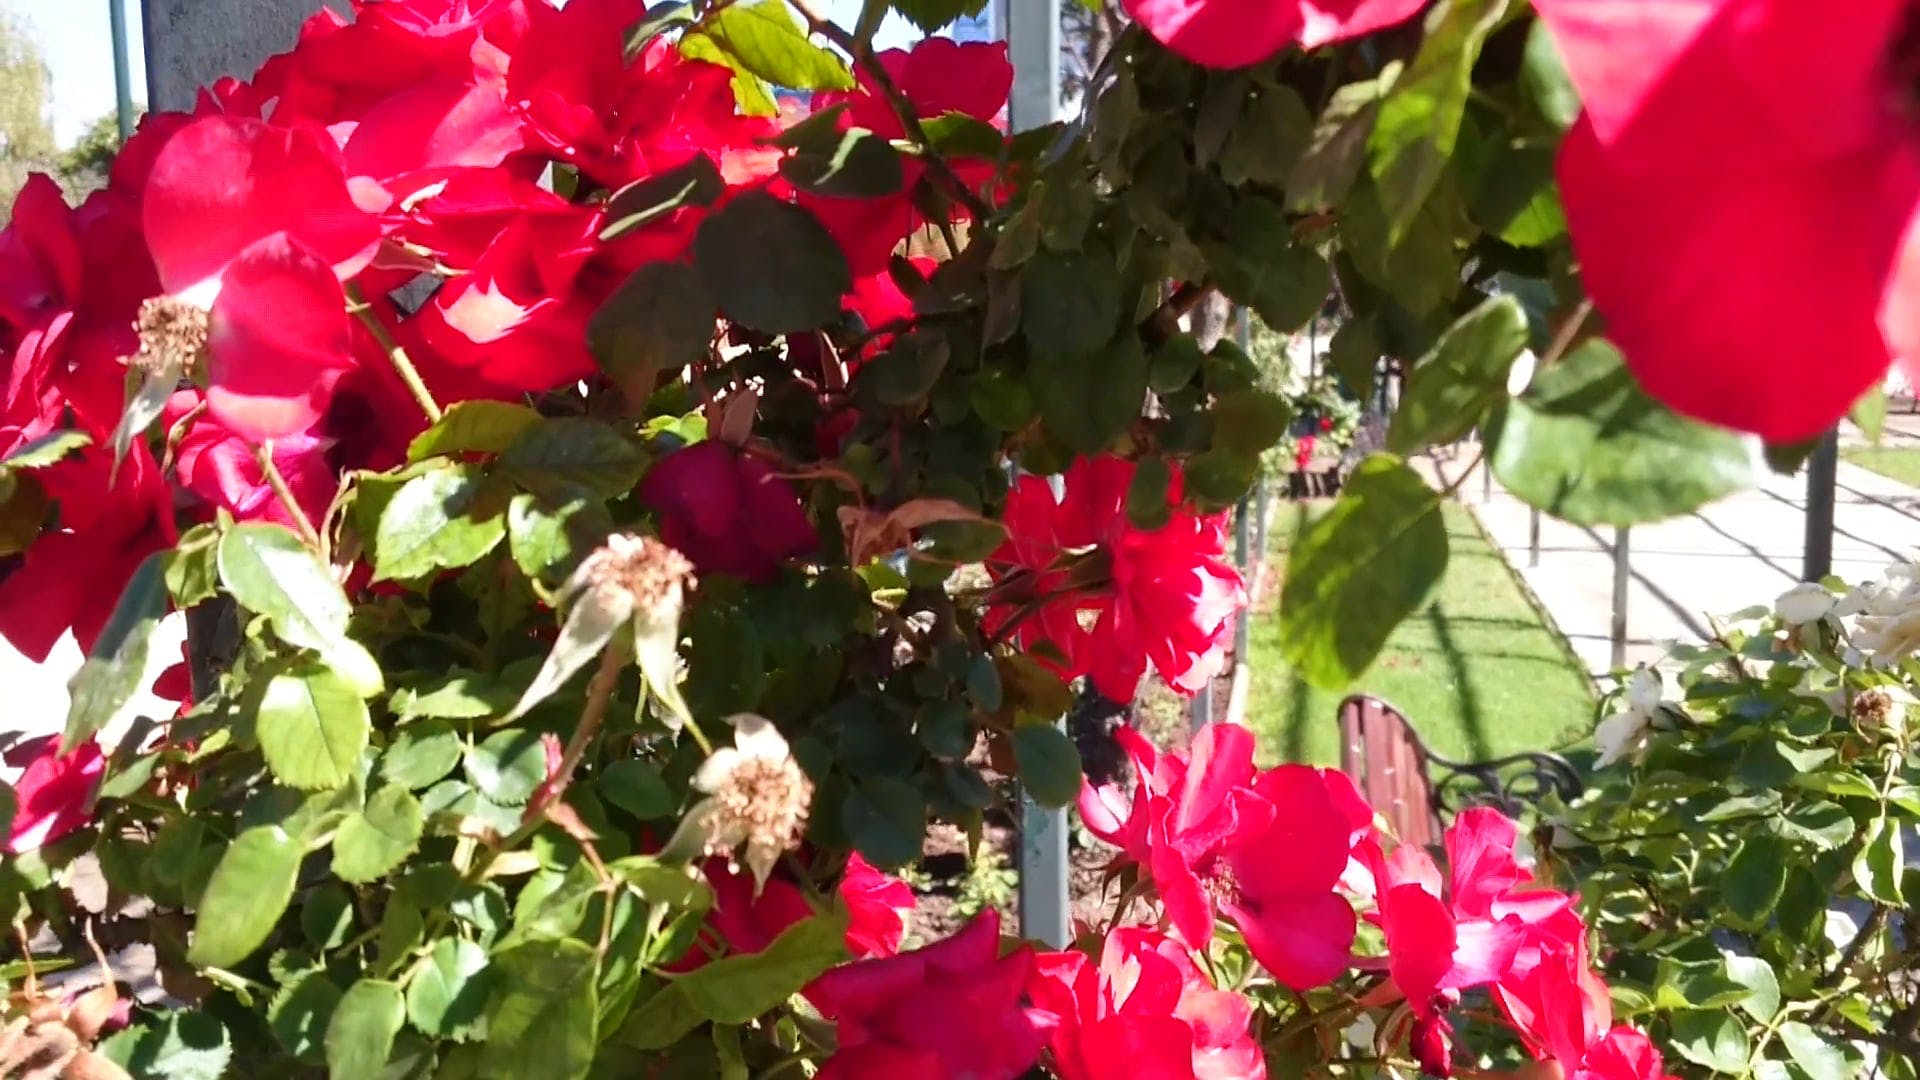 Beautiful Red Flowers In The Garden